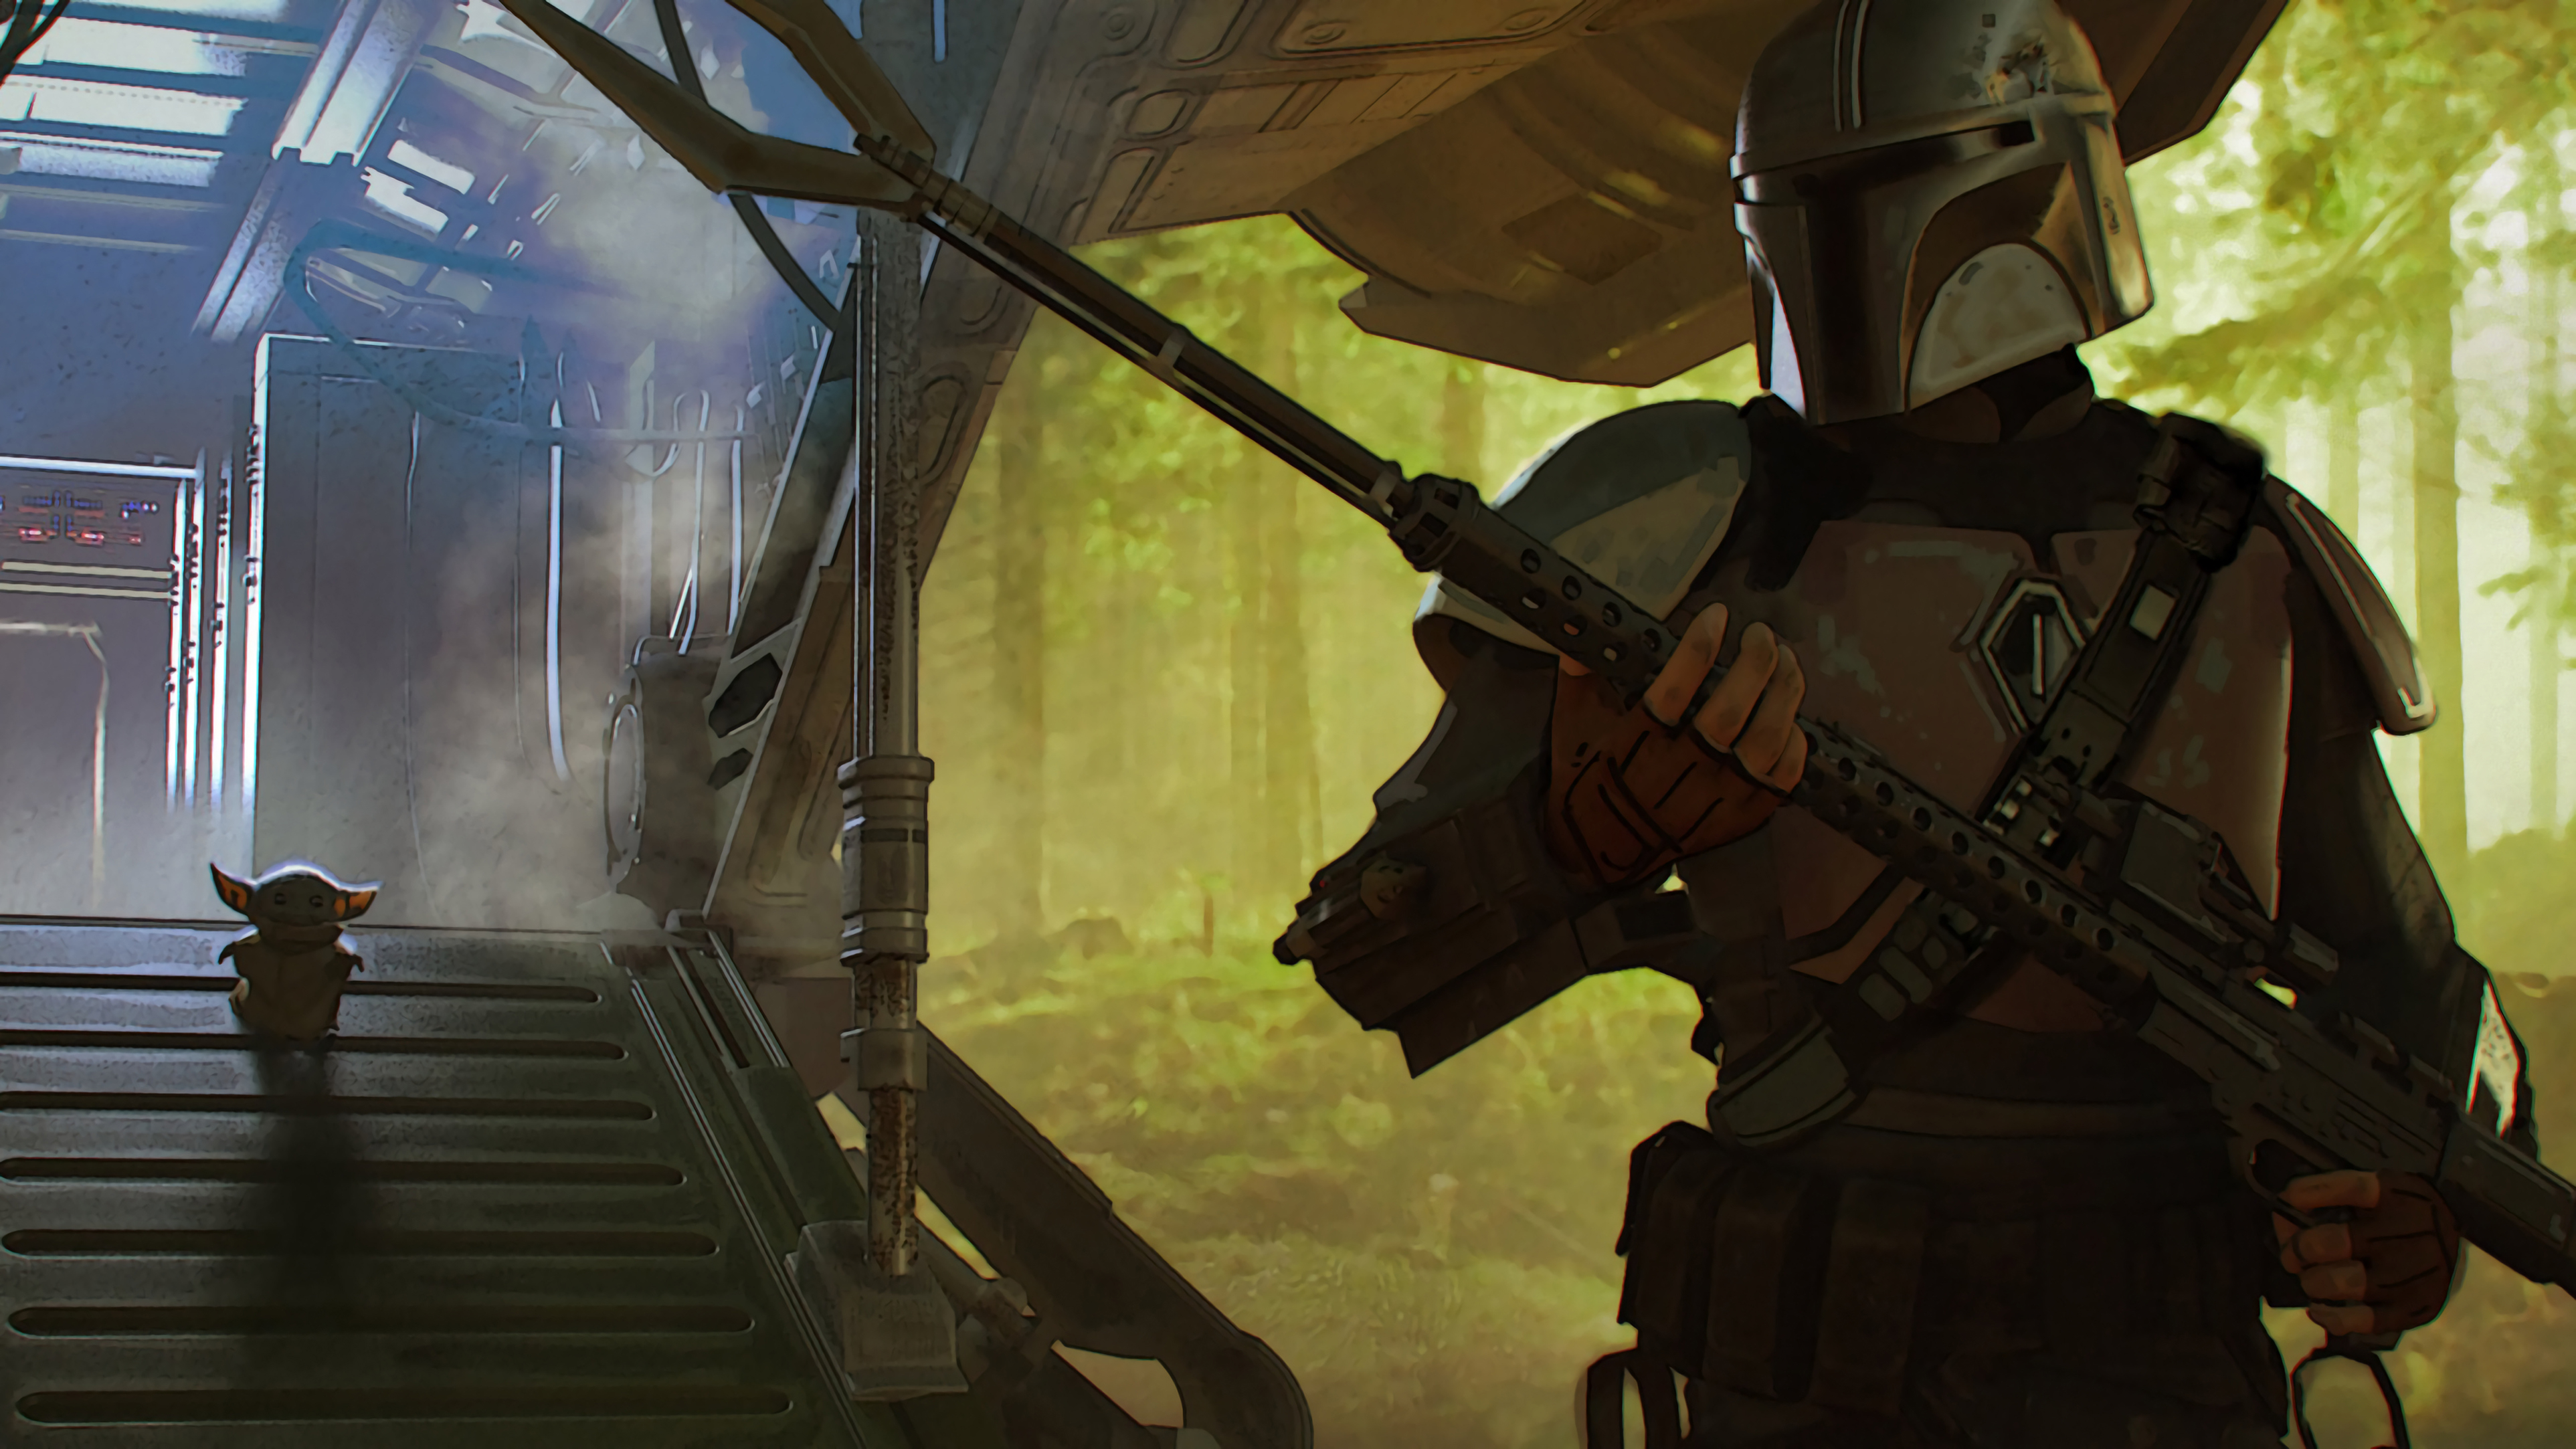 1620x2160 The Mandalorian Chapter 1 1620x2160 Resolution Wallpaper Hd Tv Series 4k Wallpapers Images Photos And Background